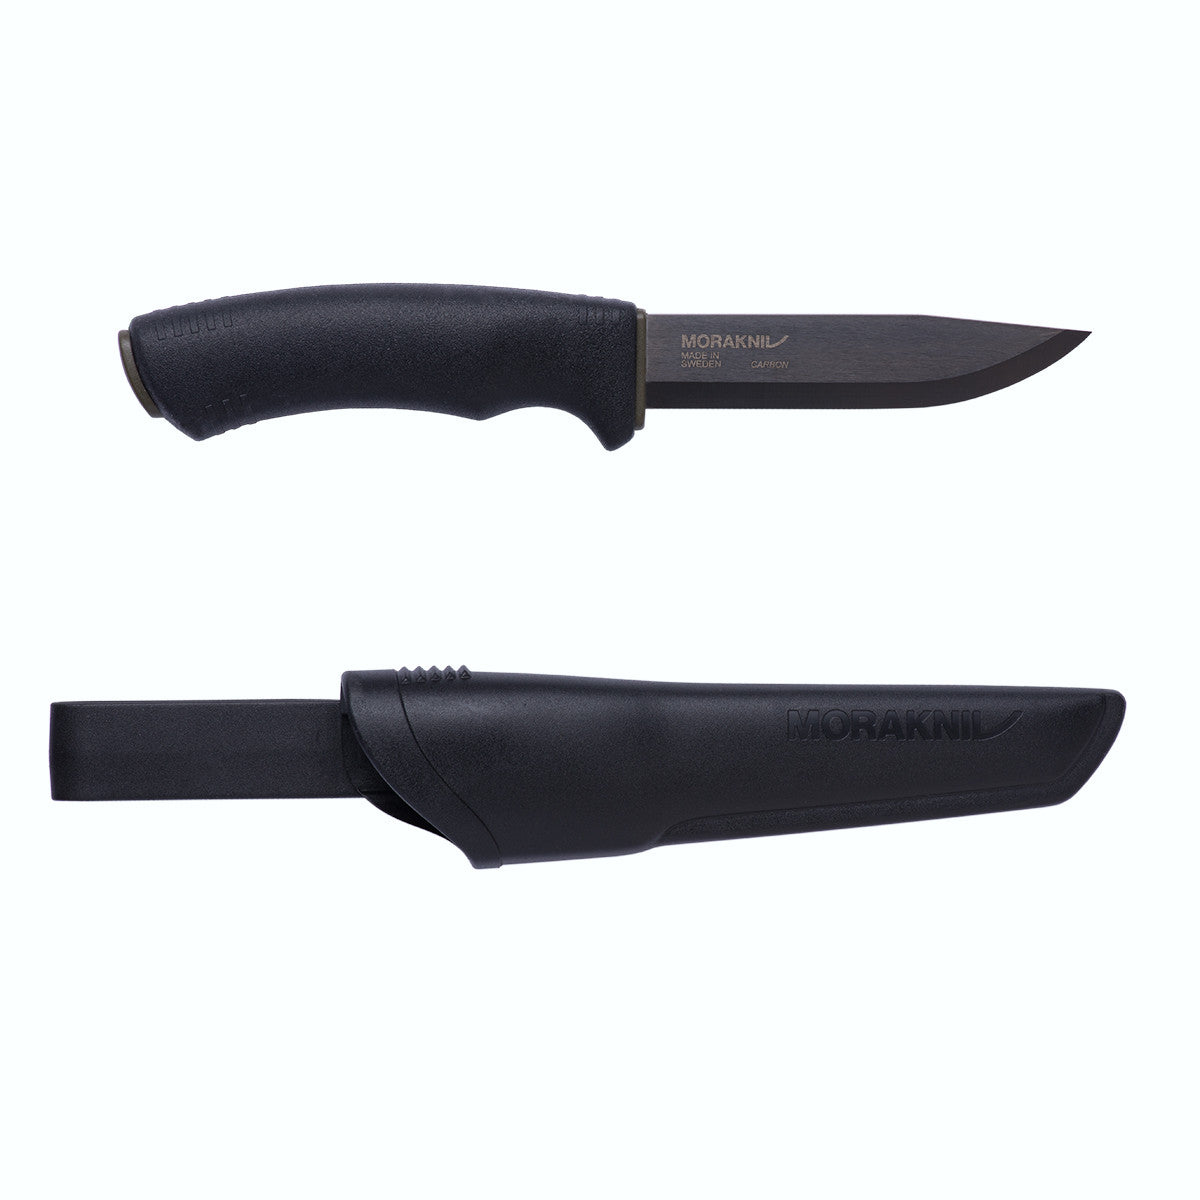 Morakniv Morakniv Bushcraft Black High Carbon Steel Outdoor Knife with Clam Sheath - BNR Industrial